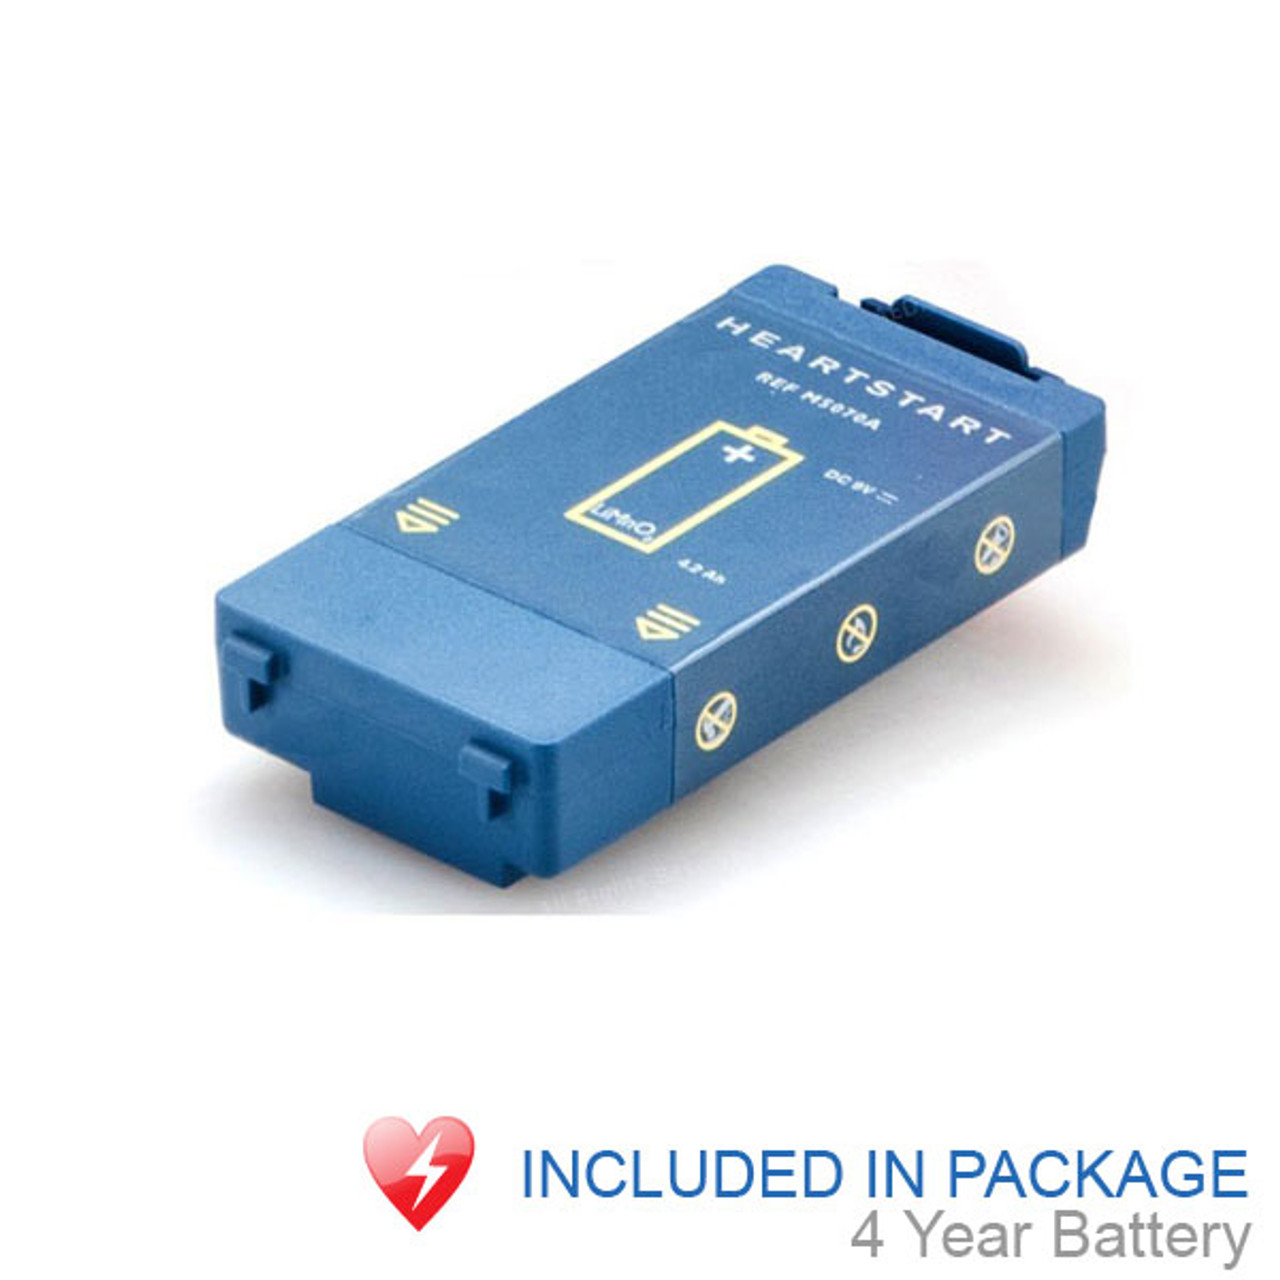 Philips Home and Cottage Safety AED Package